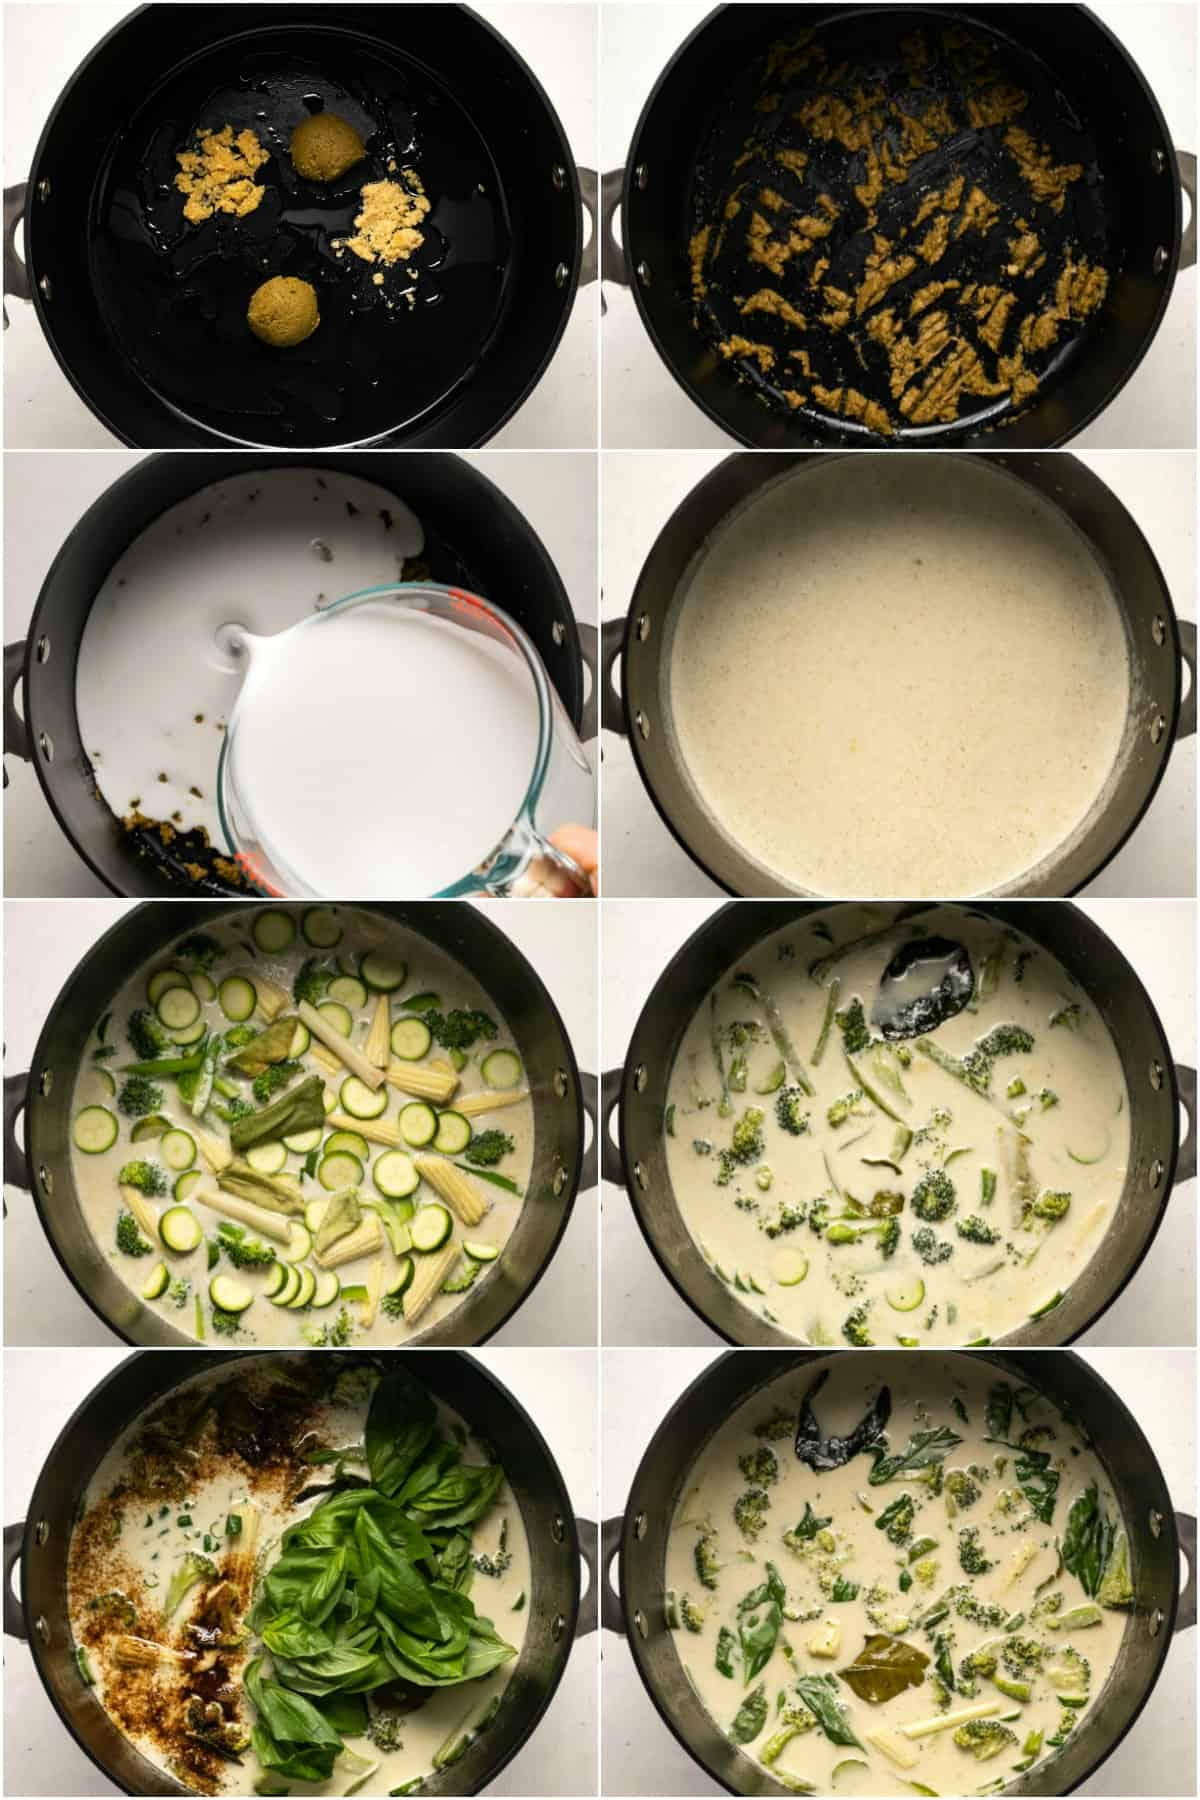 Step by step process photo collage of making a Thai green curry.